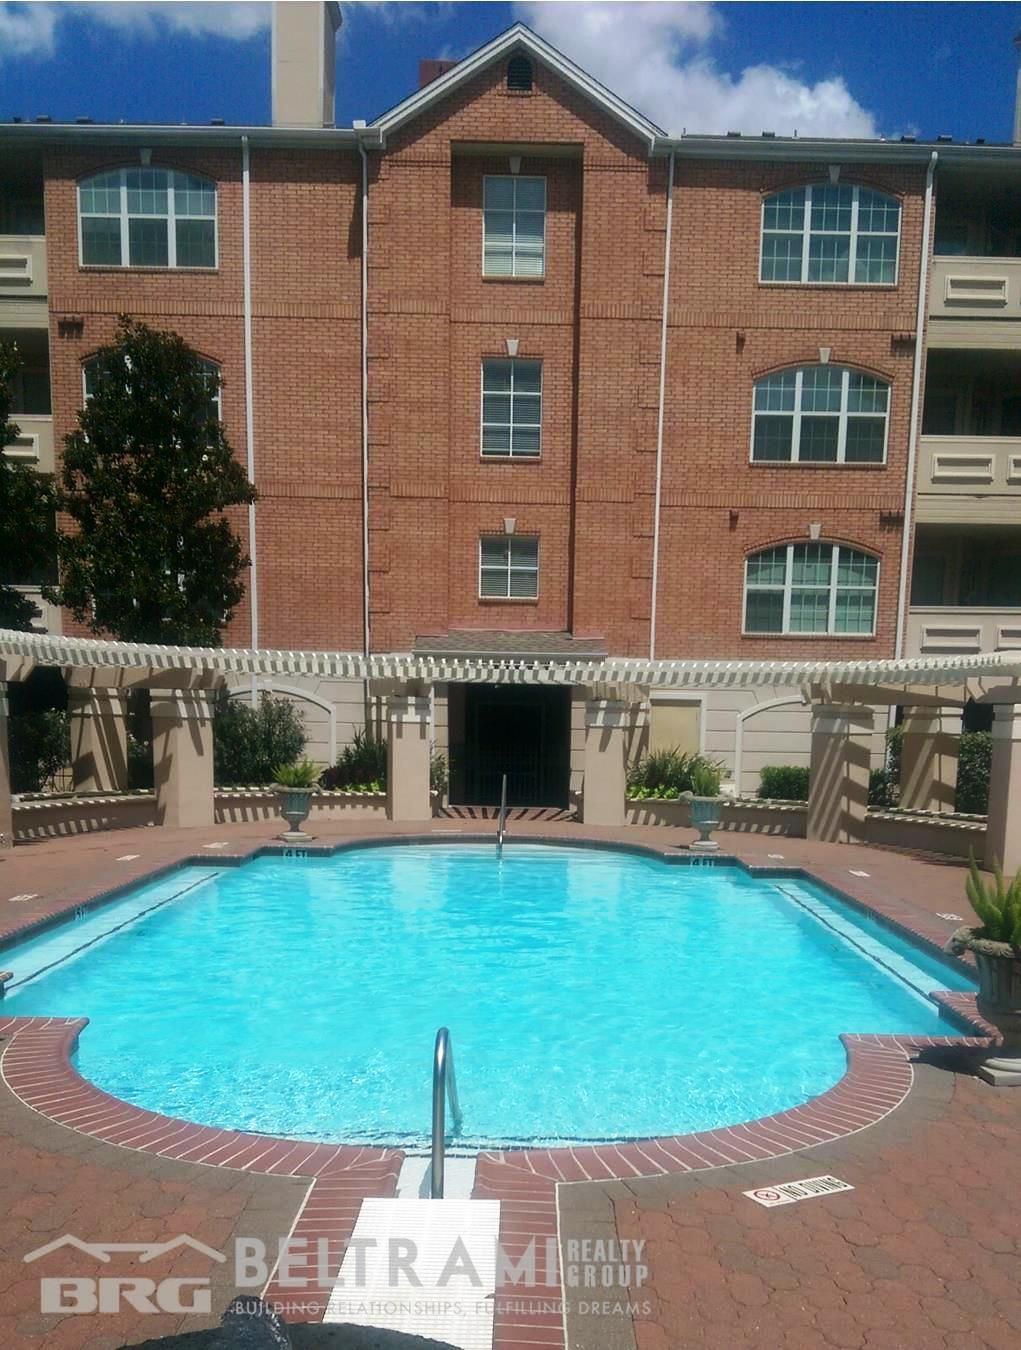 2111 Welch St A202, Houston, TX 77019 Great condo